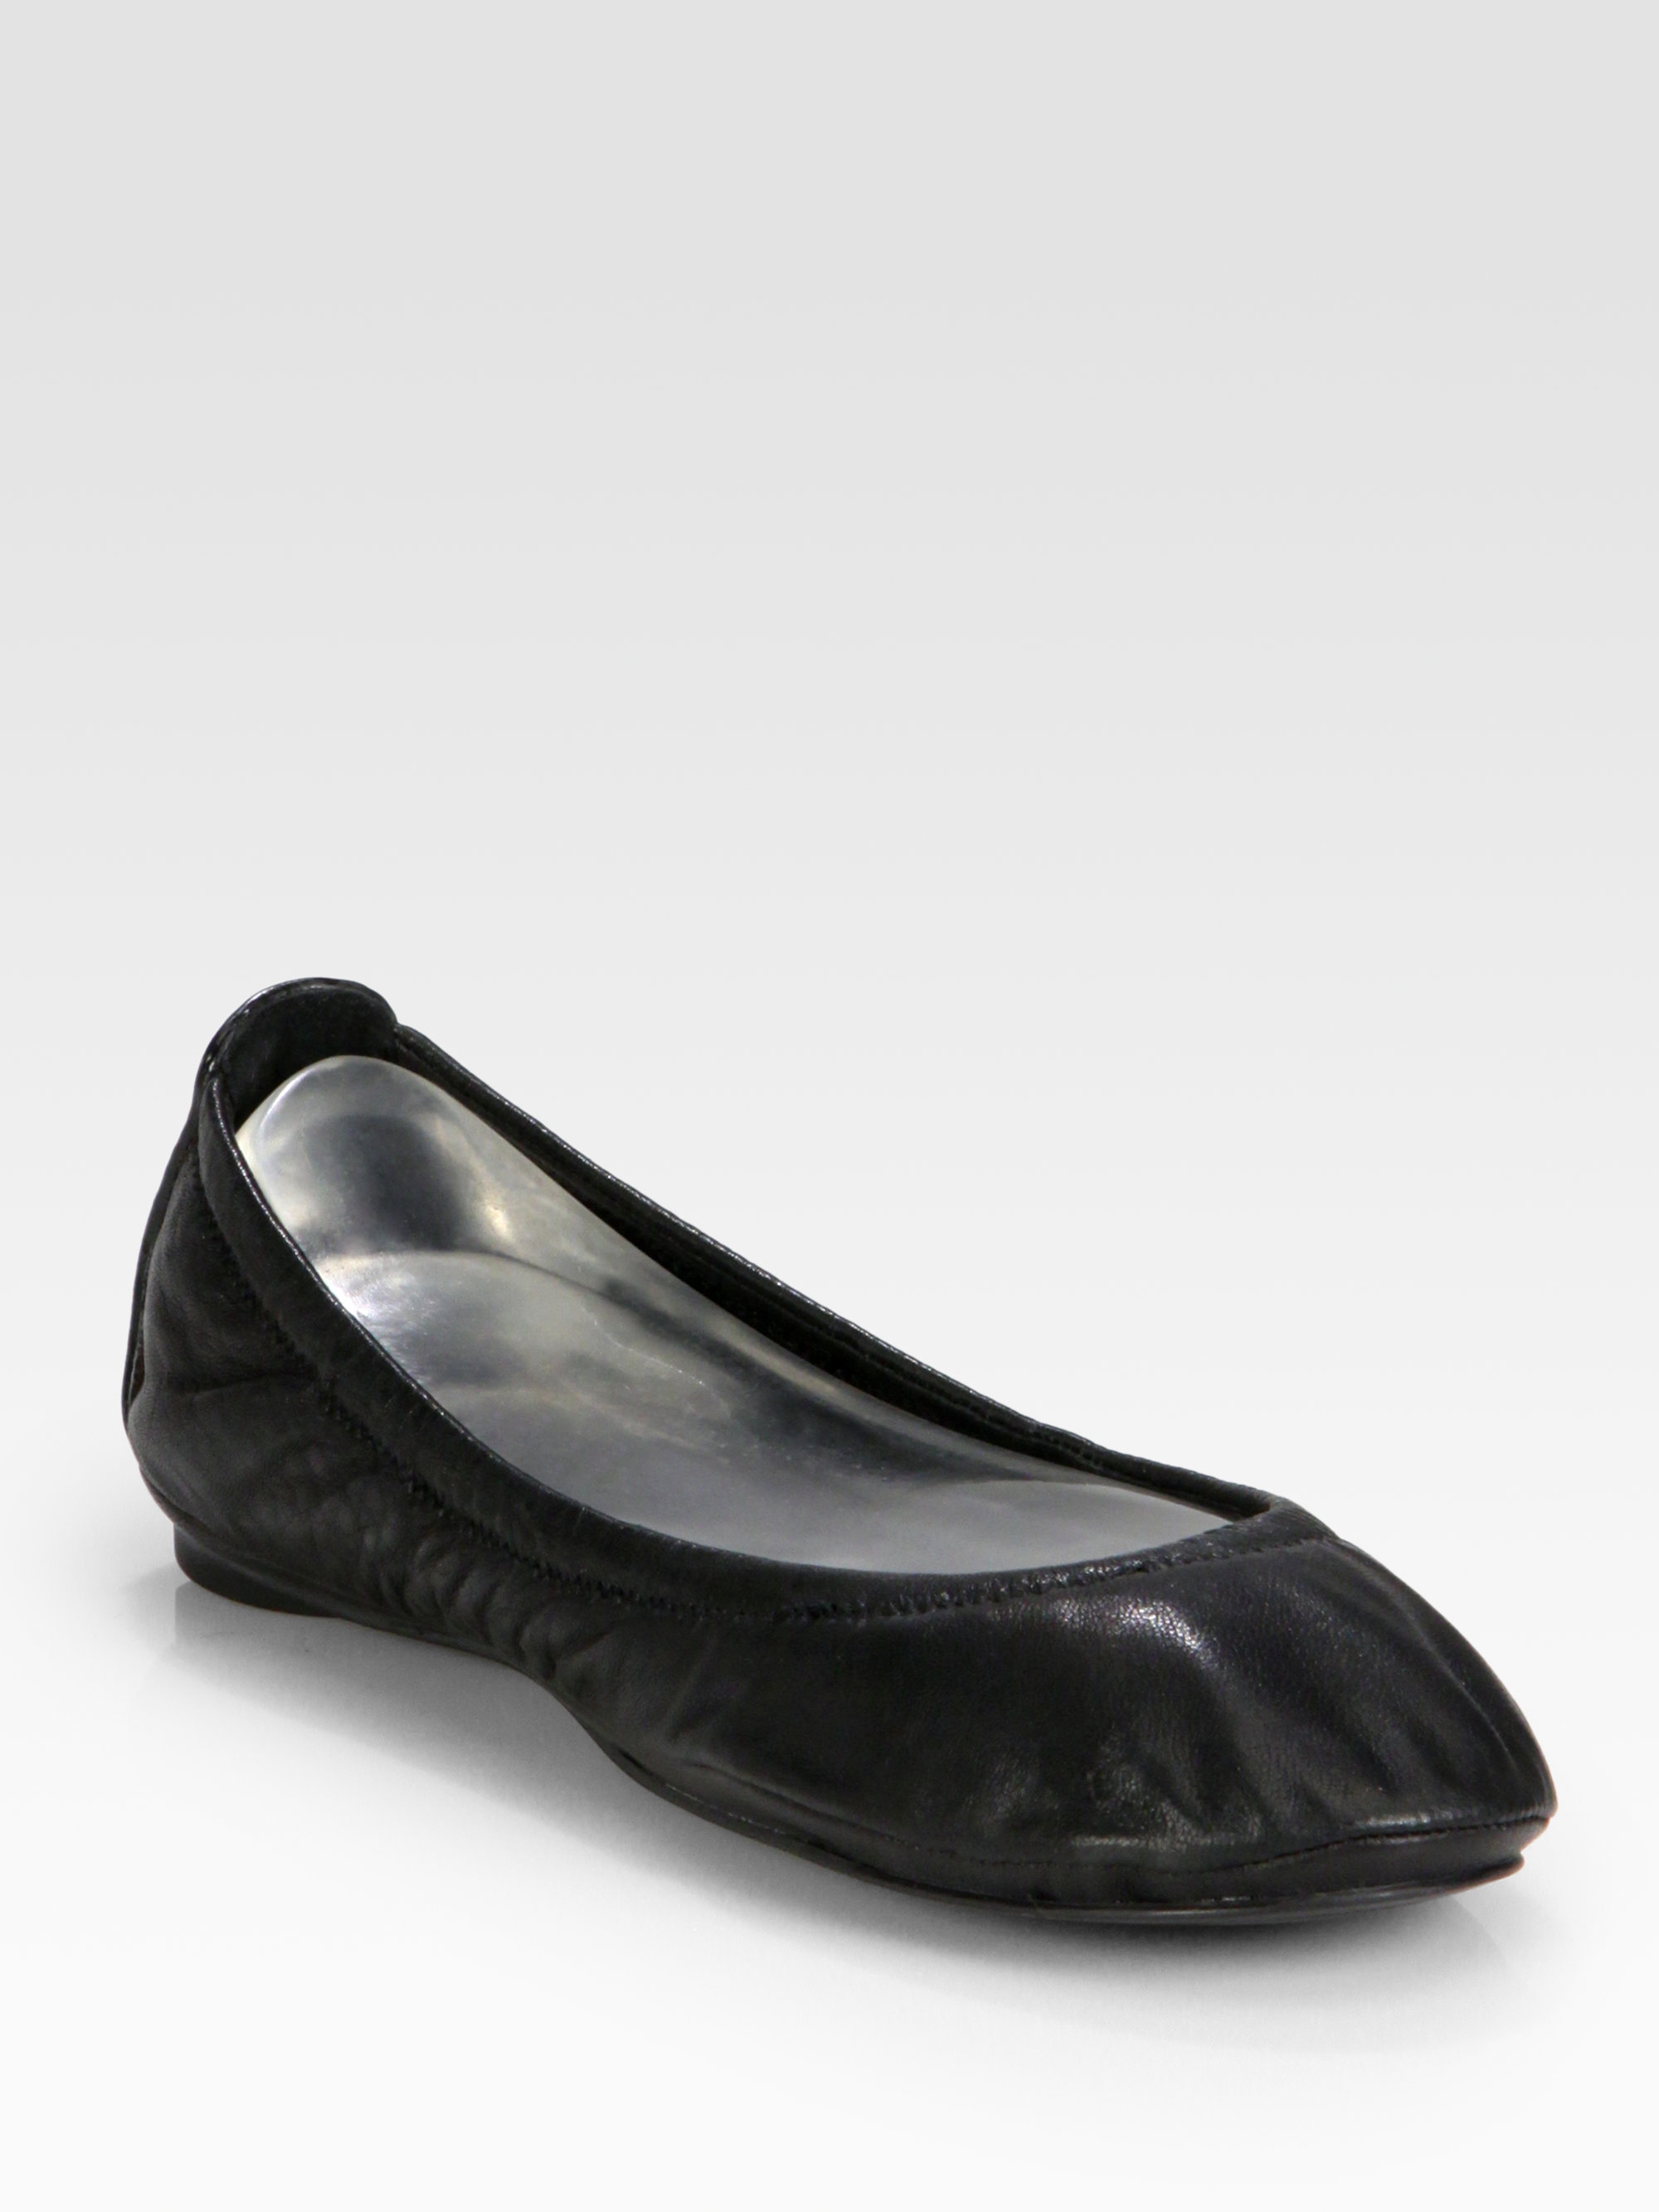 297b889face4 Lyst - Tory Burch Eddie Scrunch Ballet Flats in Black